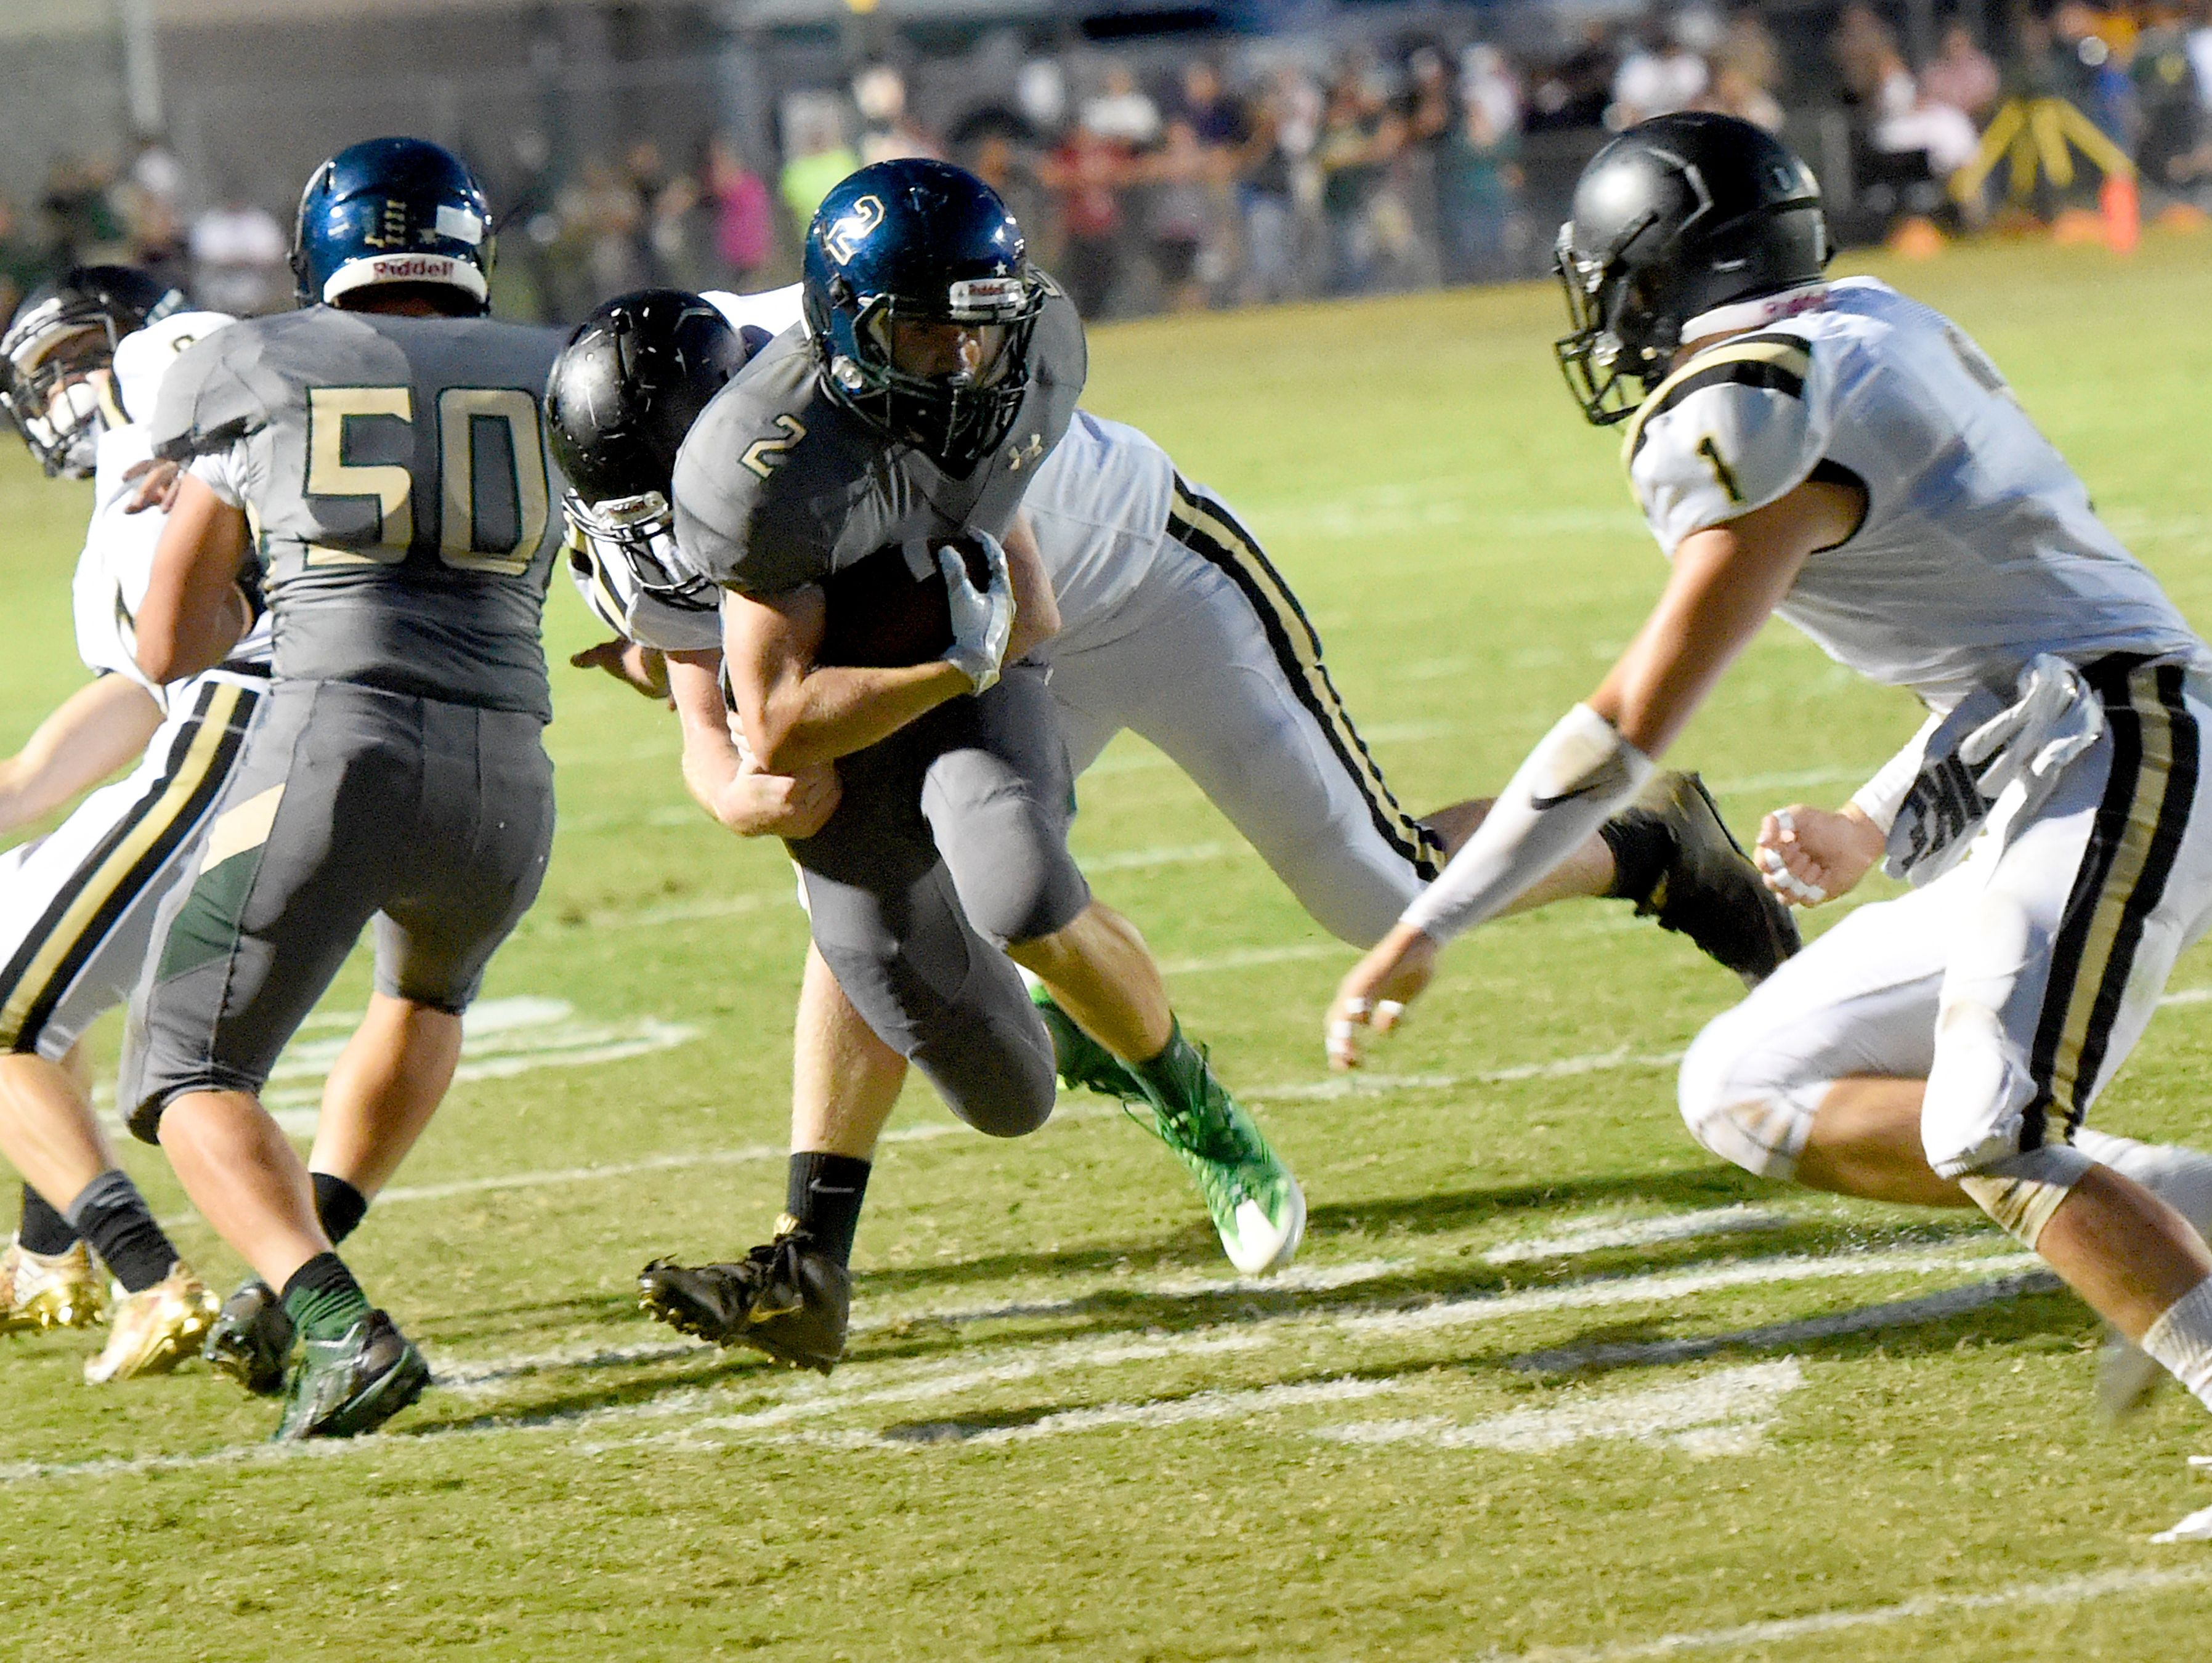 Wilson Memorial's Colton Tyree holds onto the ball as he Buffalo Gap's Walker Hostetter tackles him during a football game played in Fishersville on Friday, Sept. 23, 2016.